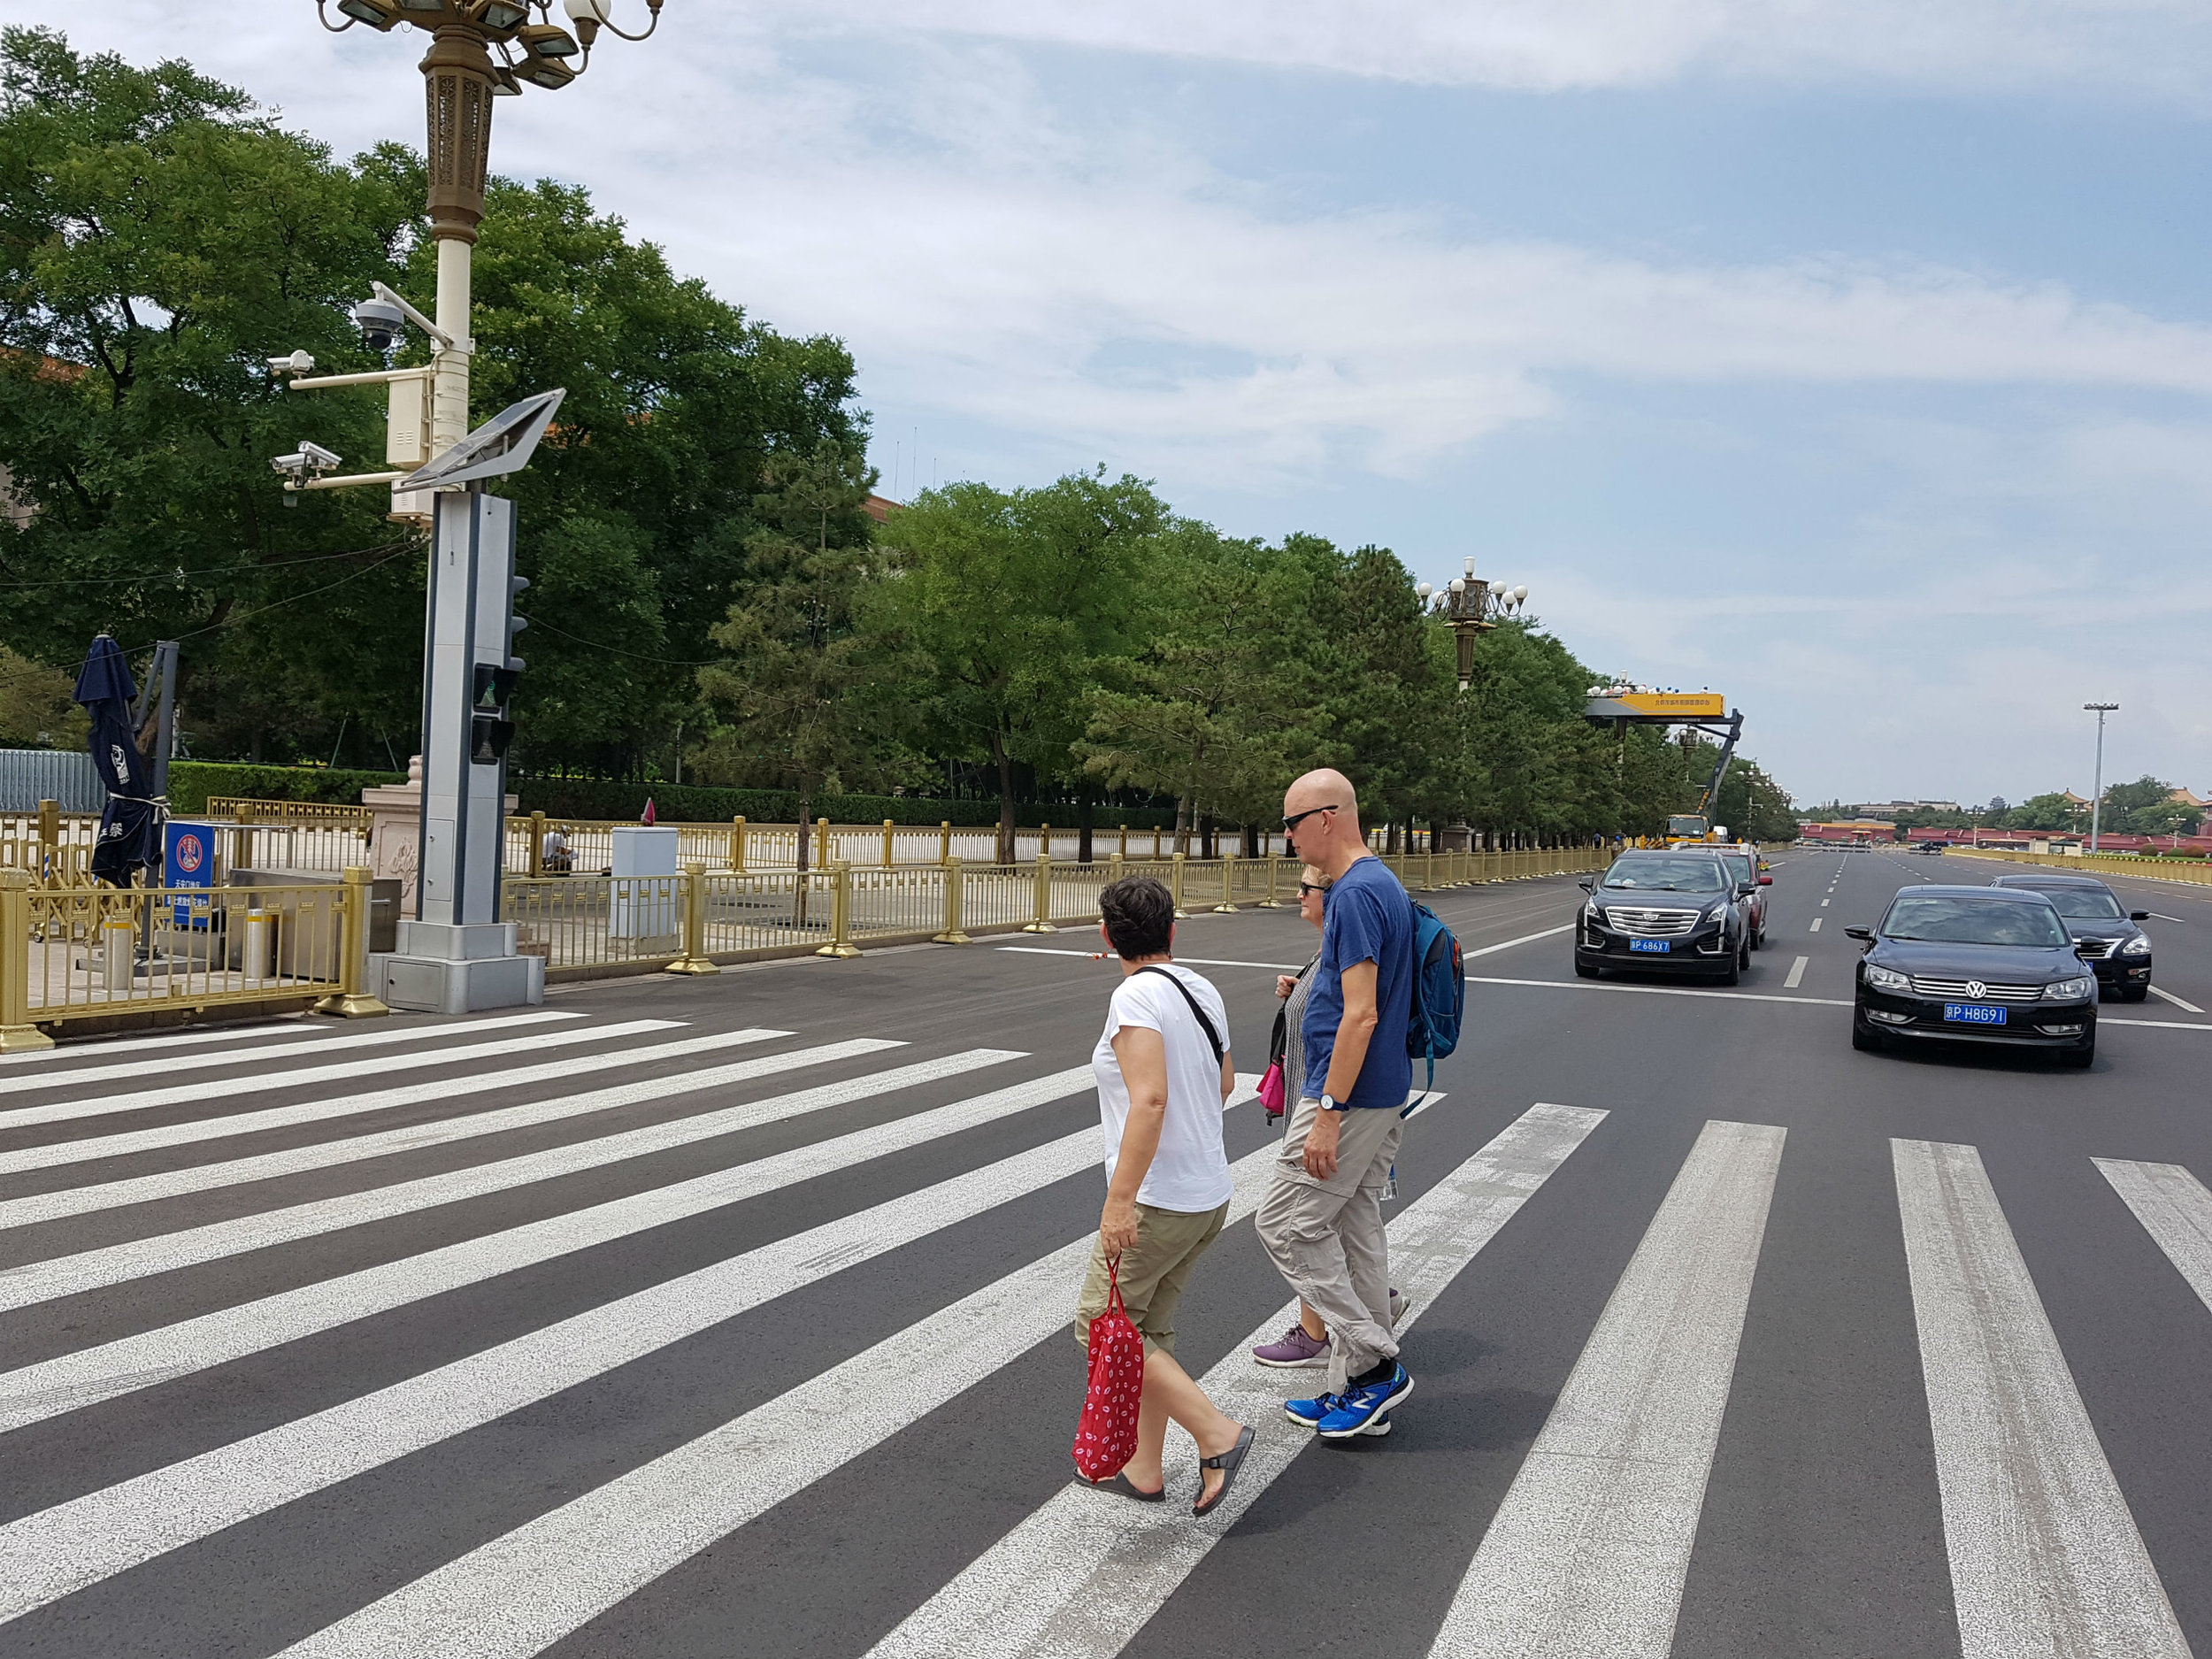 Crossing from Tiananmen Square to the Great Hall of the People